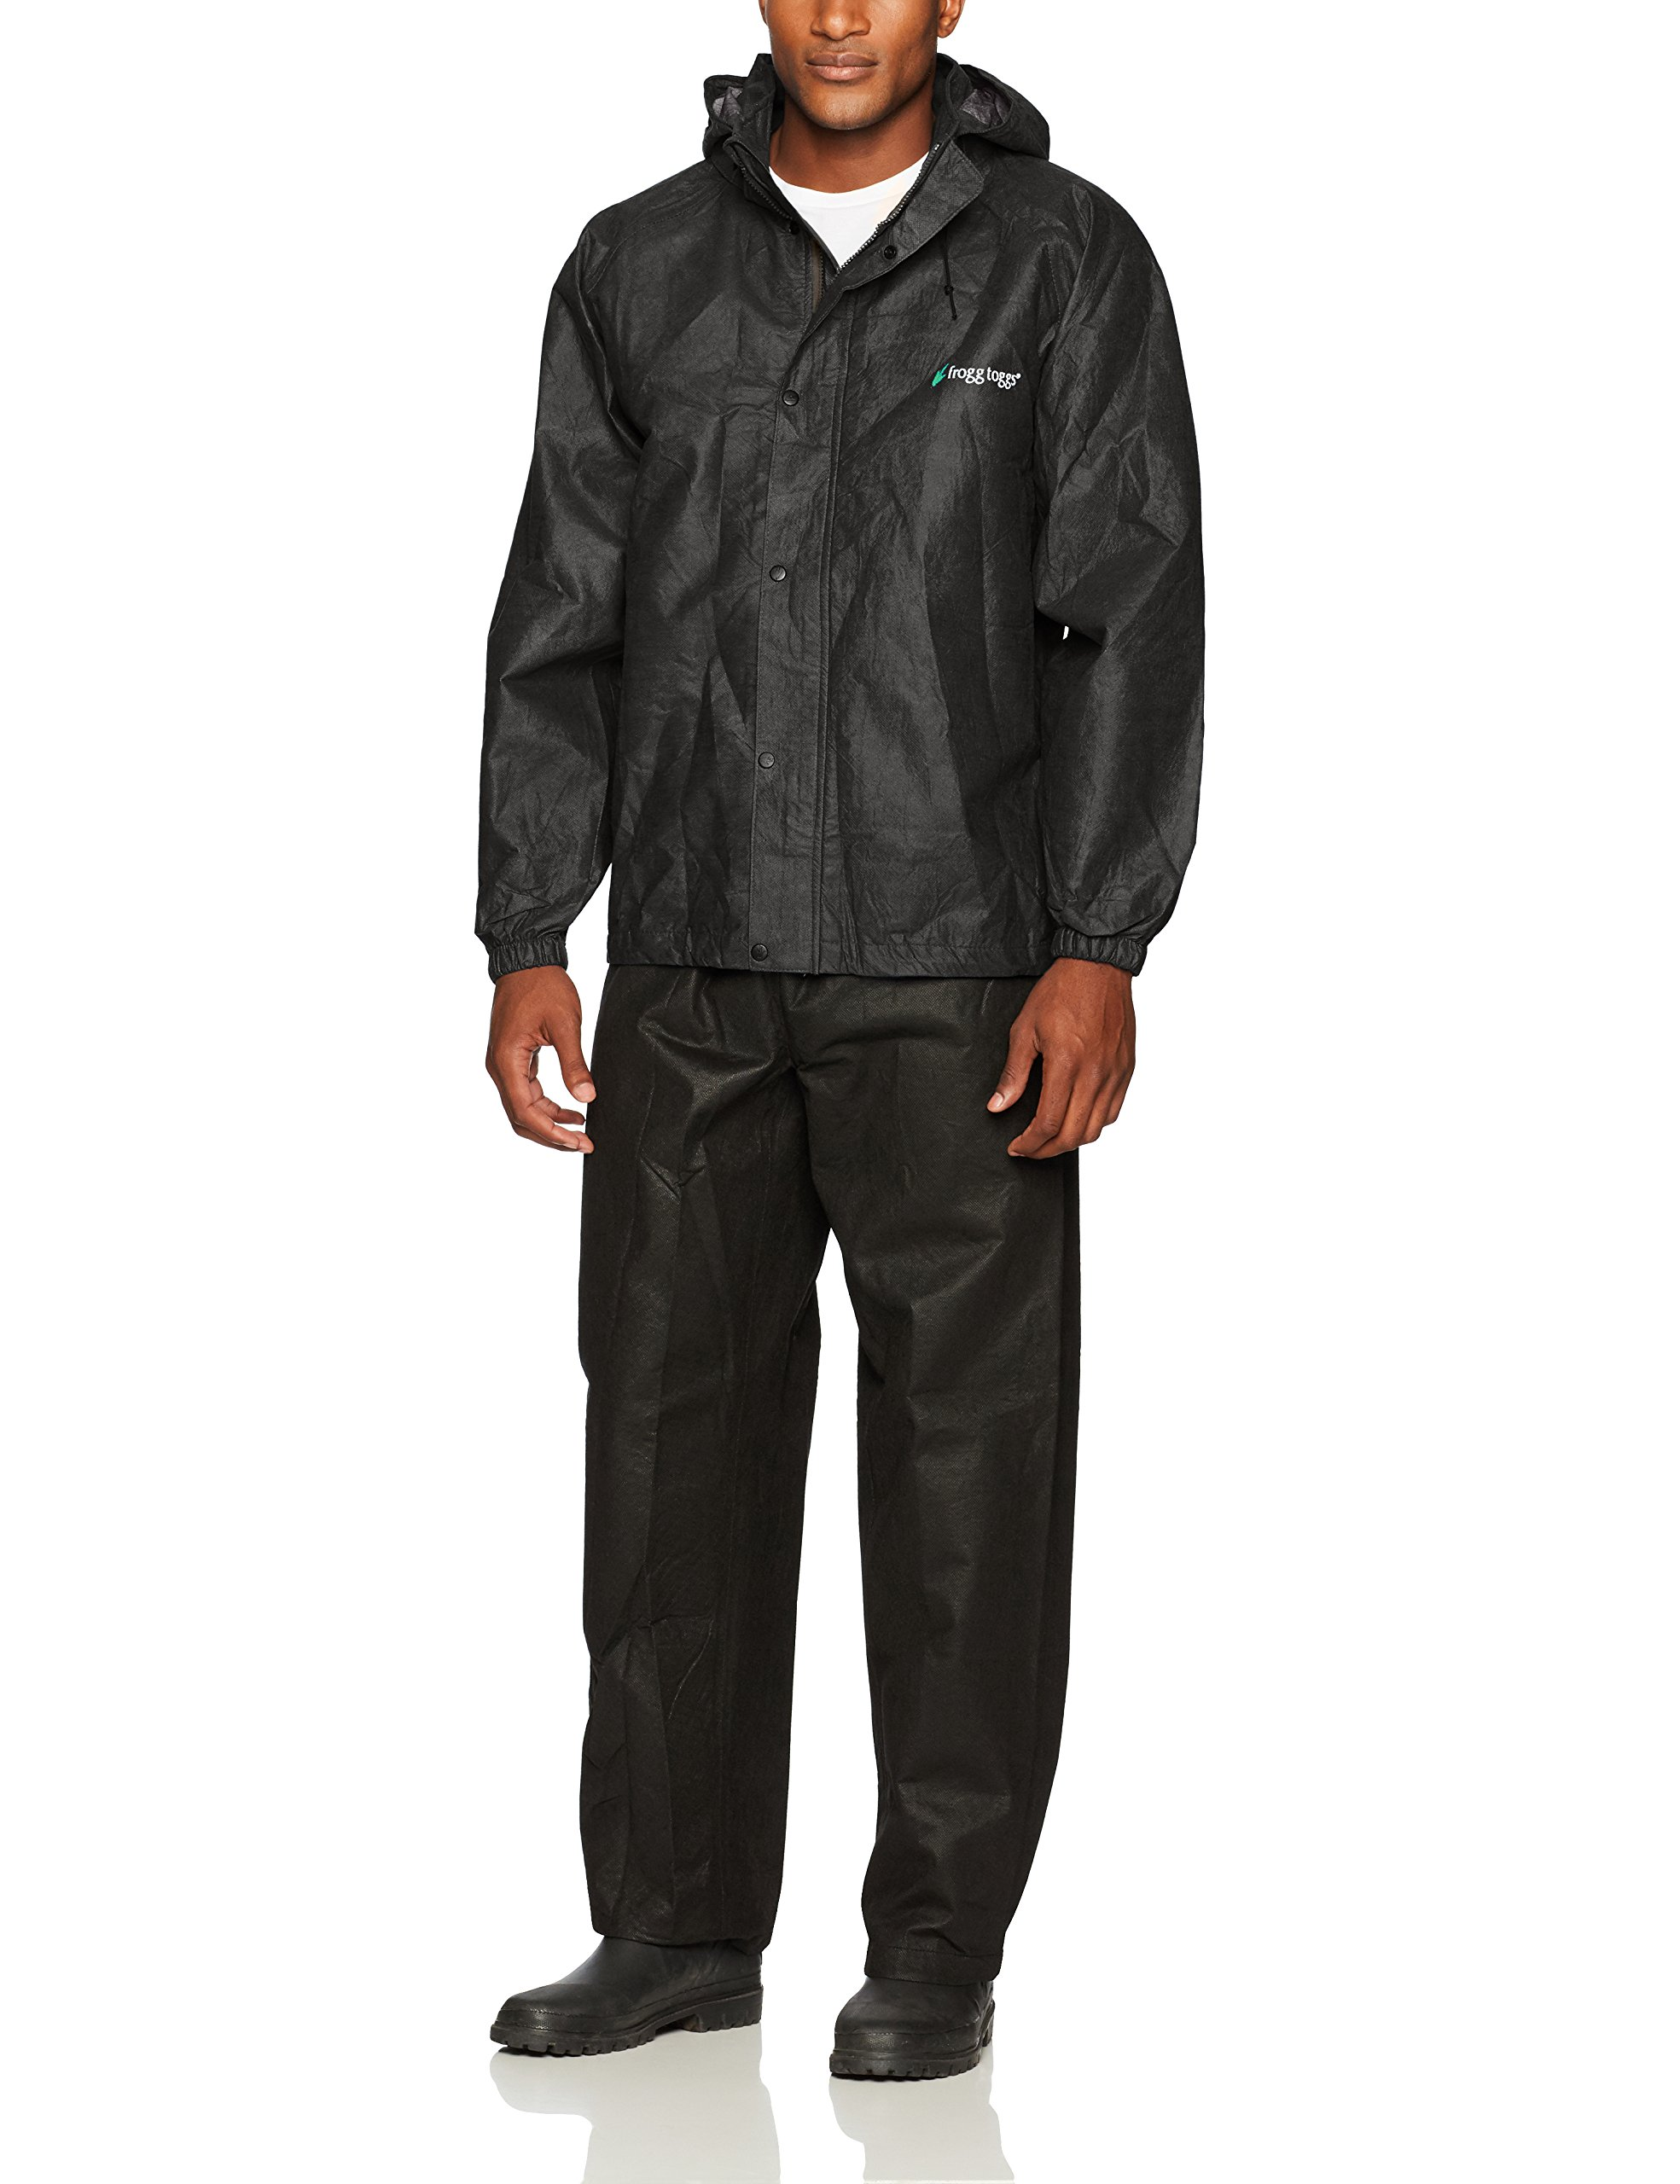 Frogg Toggs All Sport Rain Suit, Black Jacket/Black Pants, Size X-Large by Frogg Toggs